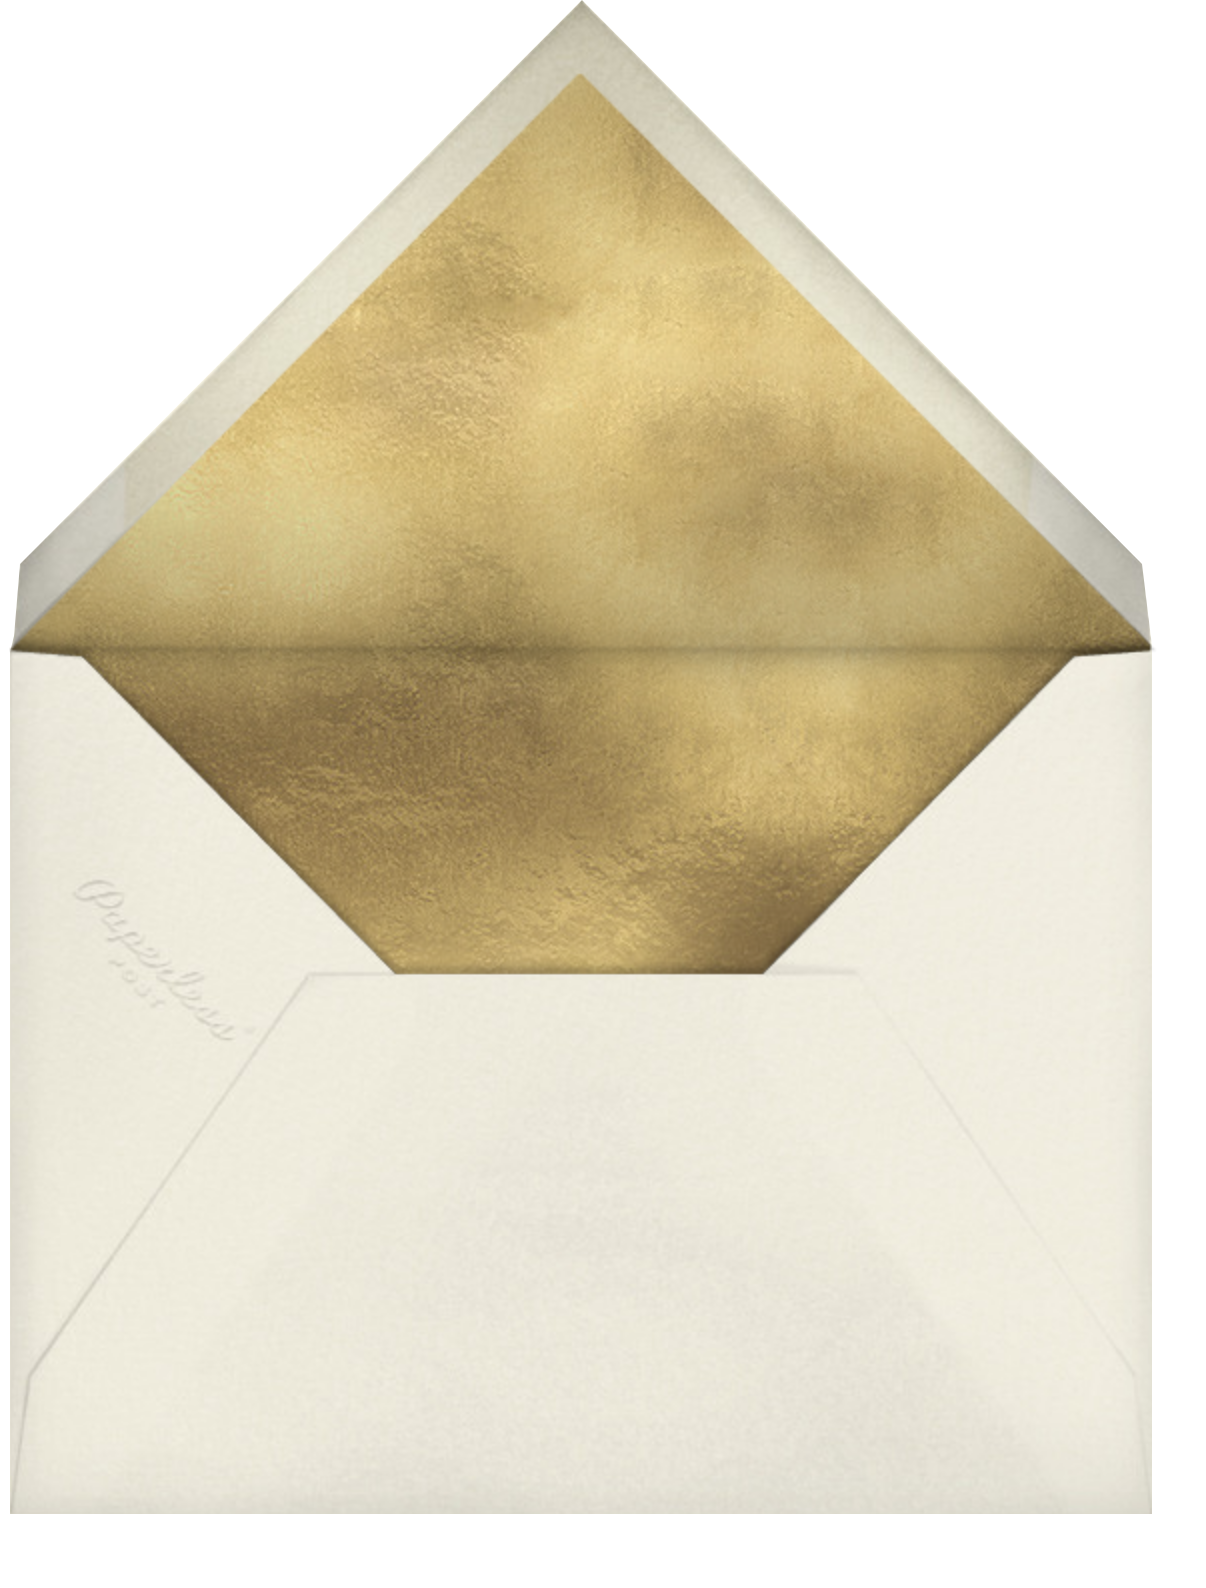 Clover and Over - Cream - kate spade new york - Adult birthday - envelope back